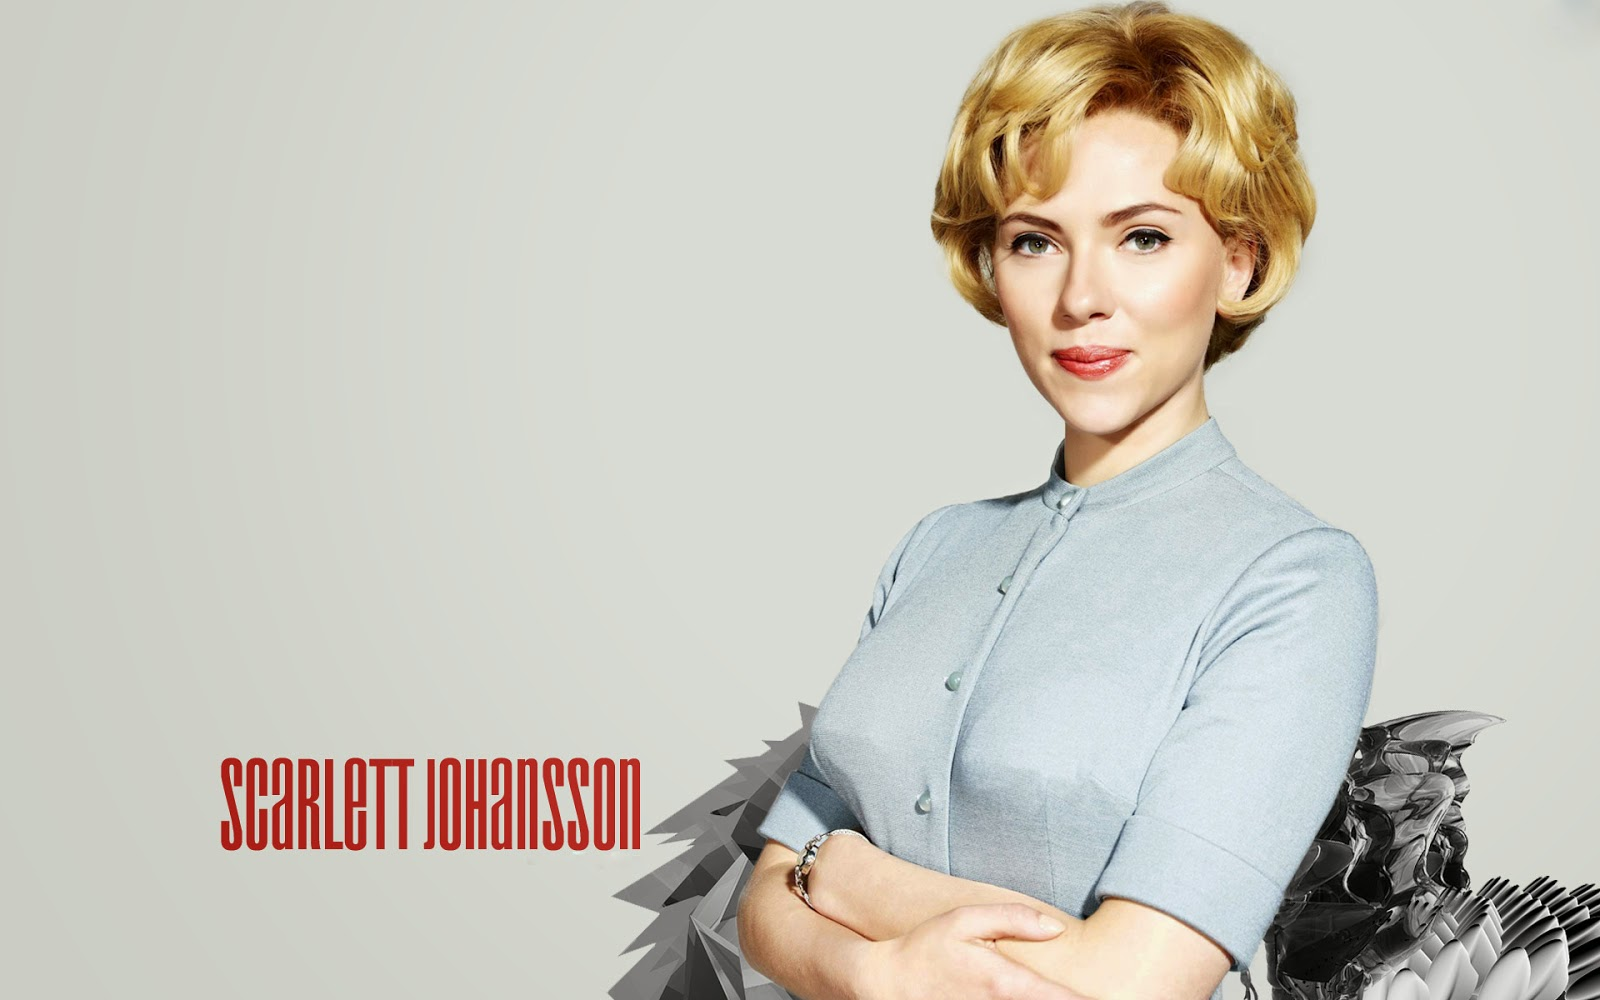 Scarlett Johansson HD Wallpaper